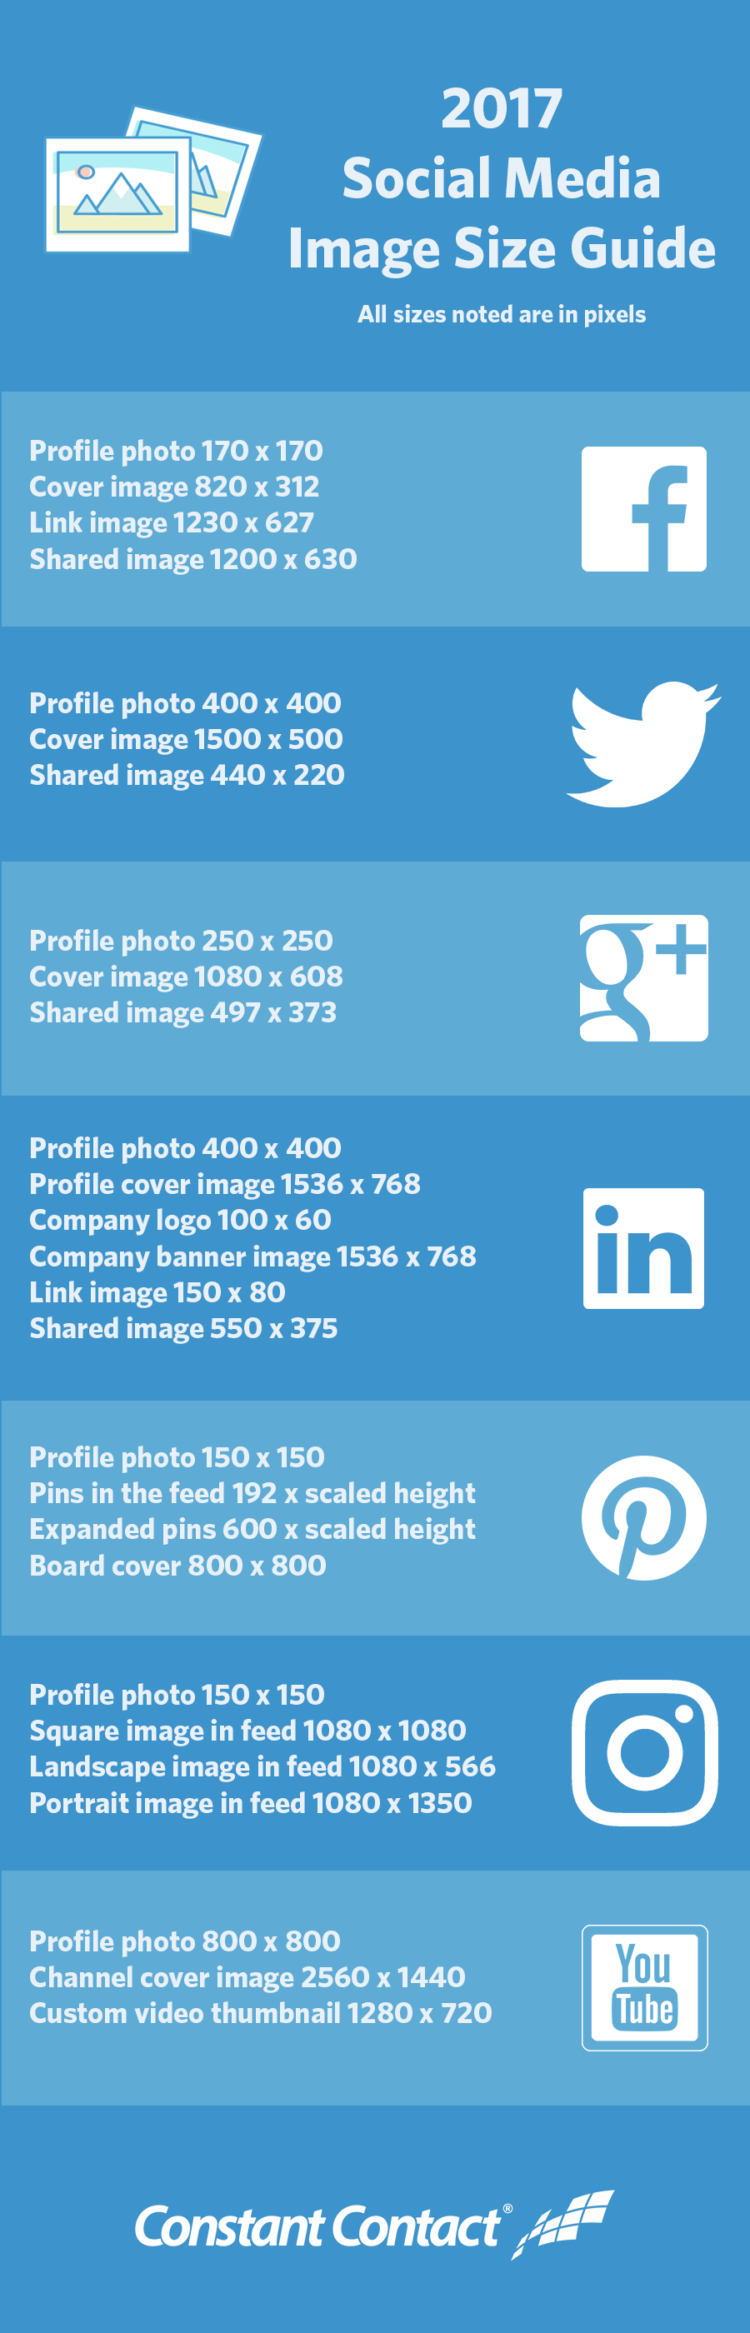 social-media-image-sizes-guide-2017